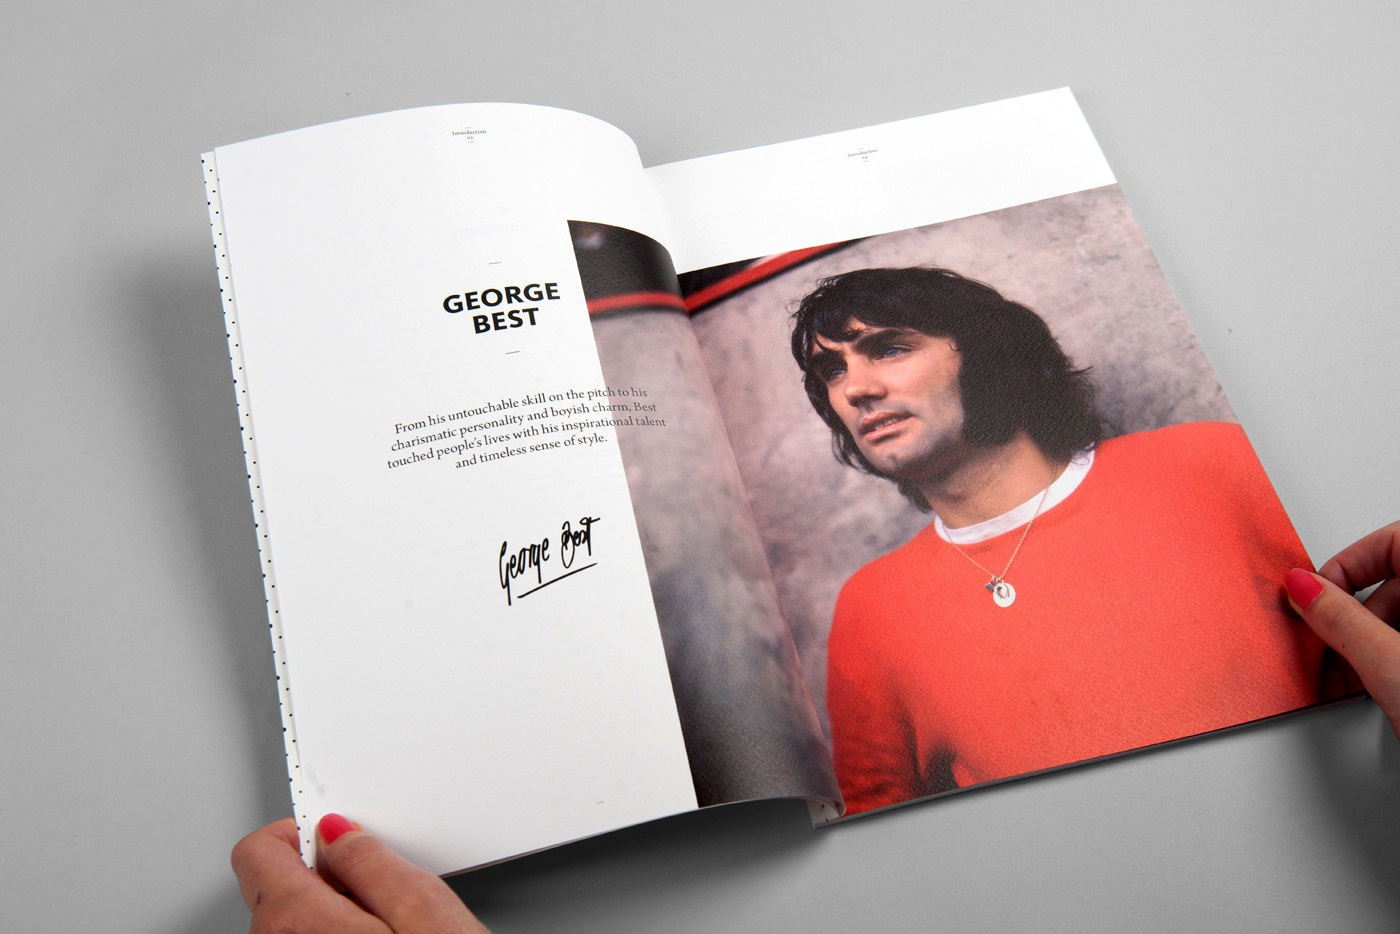 Sports web designers branding specialists george best 2